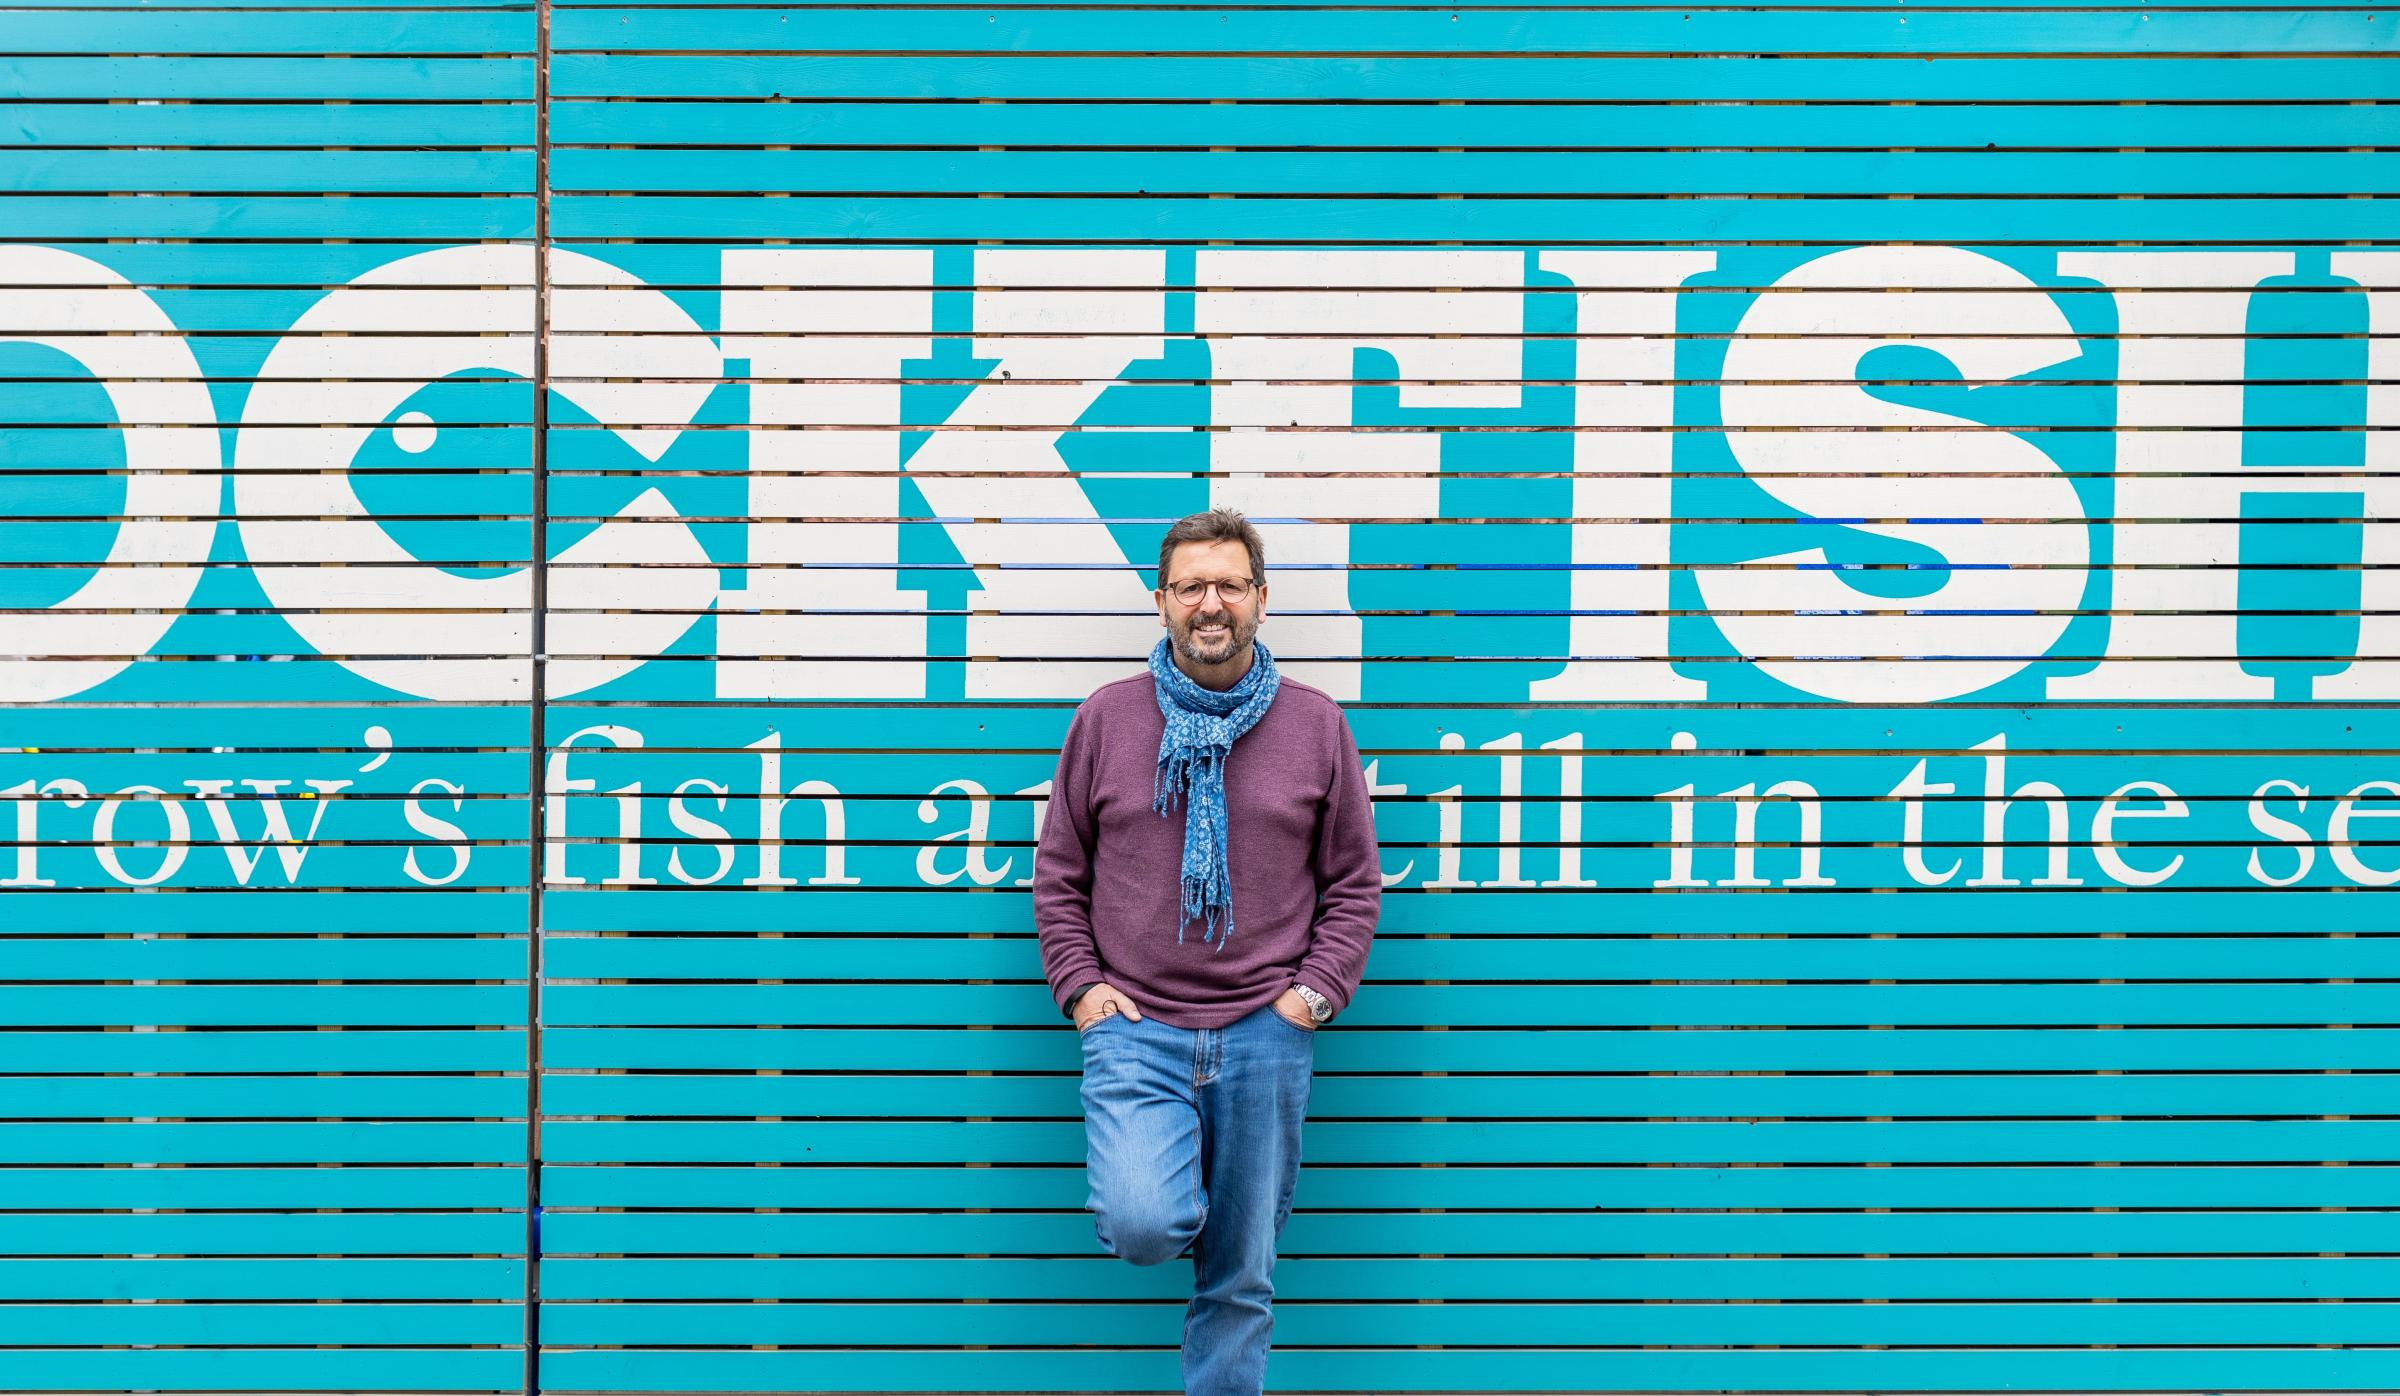 Rockfish restaurant to open on Poole Quay this autumn after closure of Purbeck Pottery